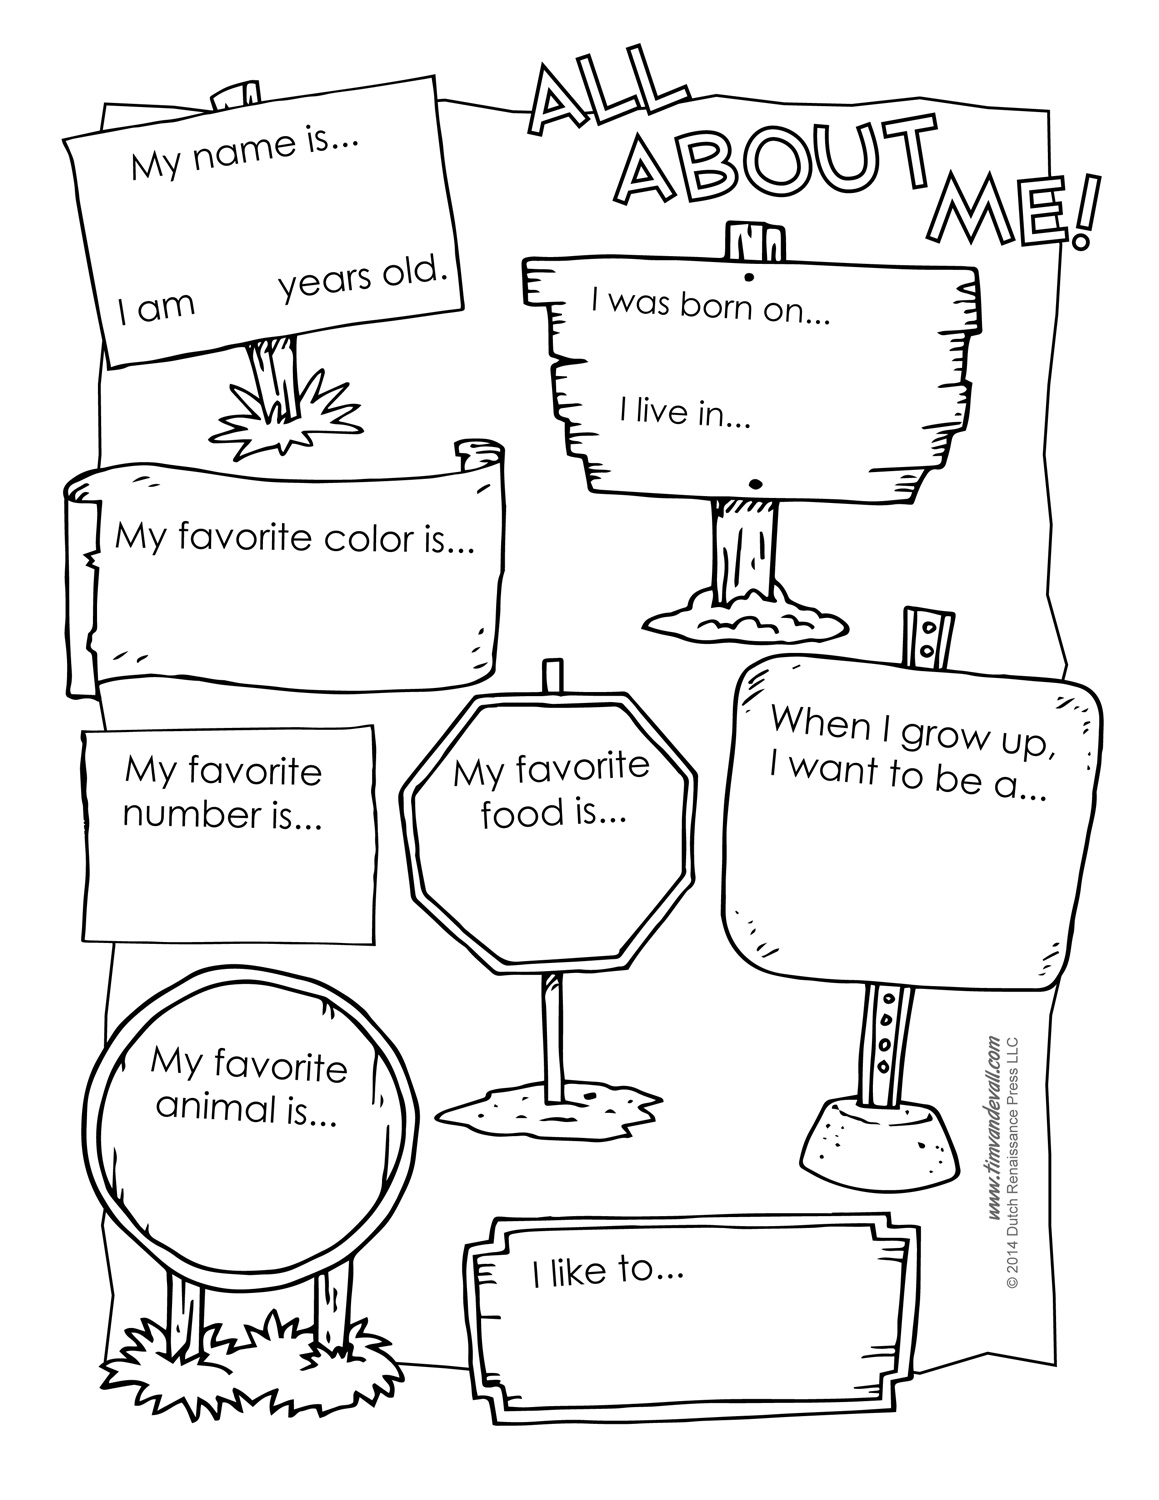 All About Me Preschool Template